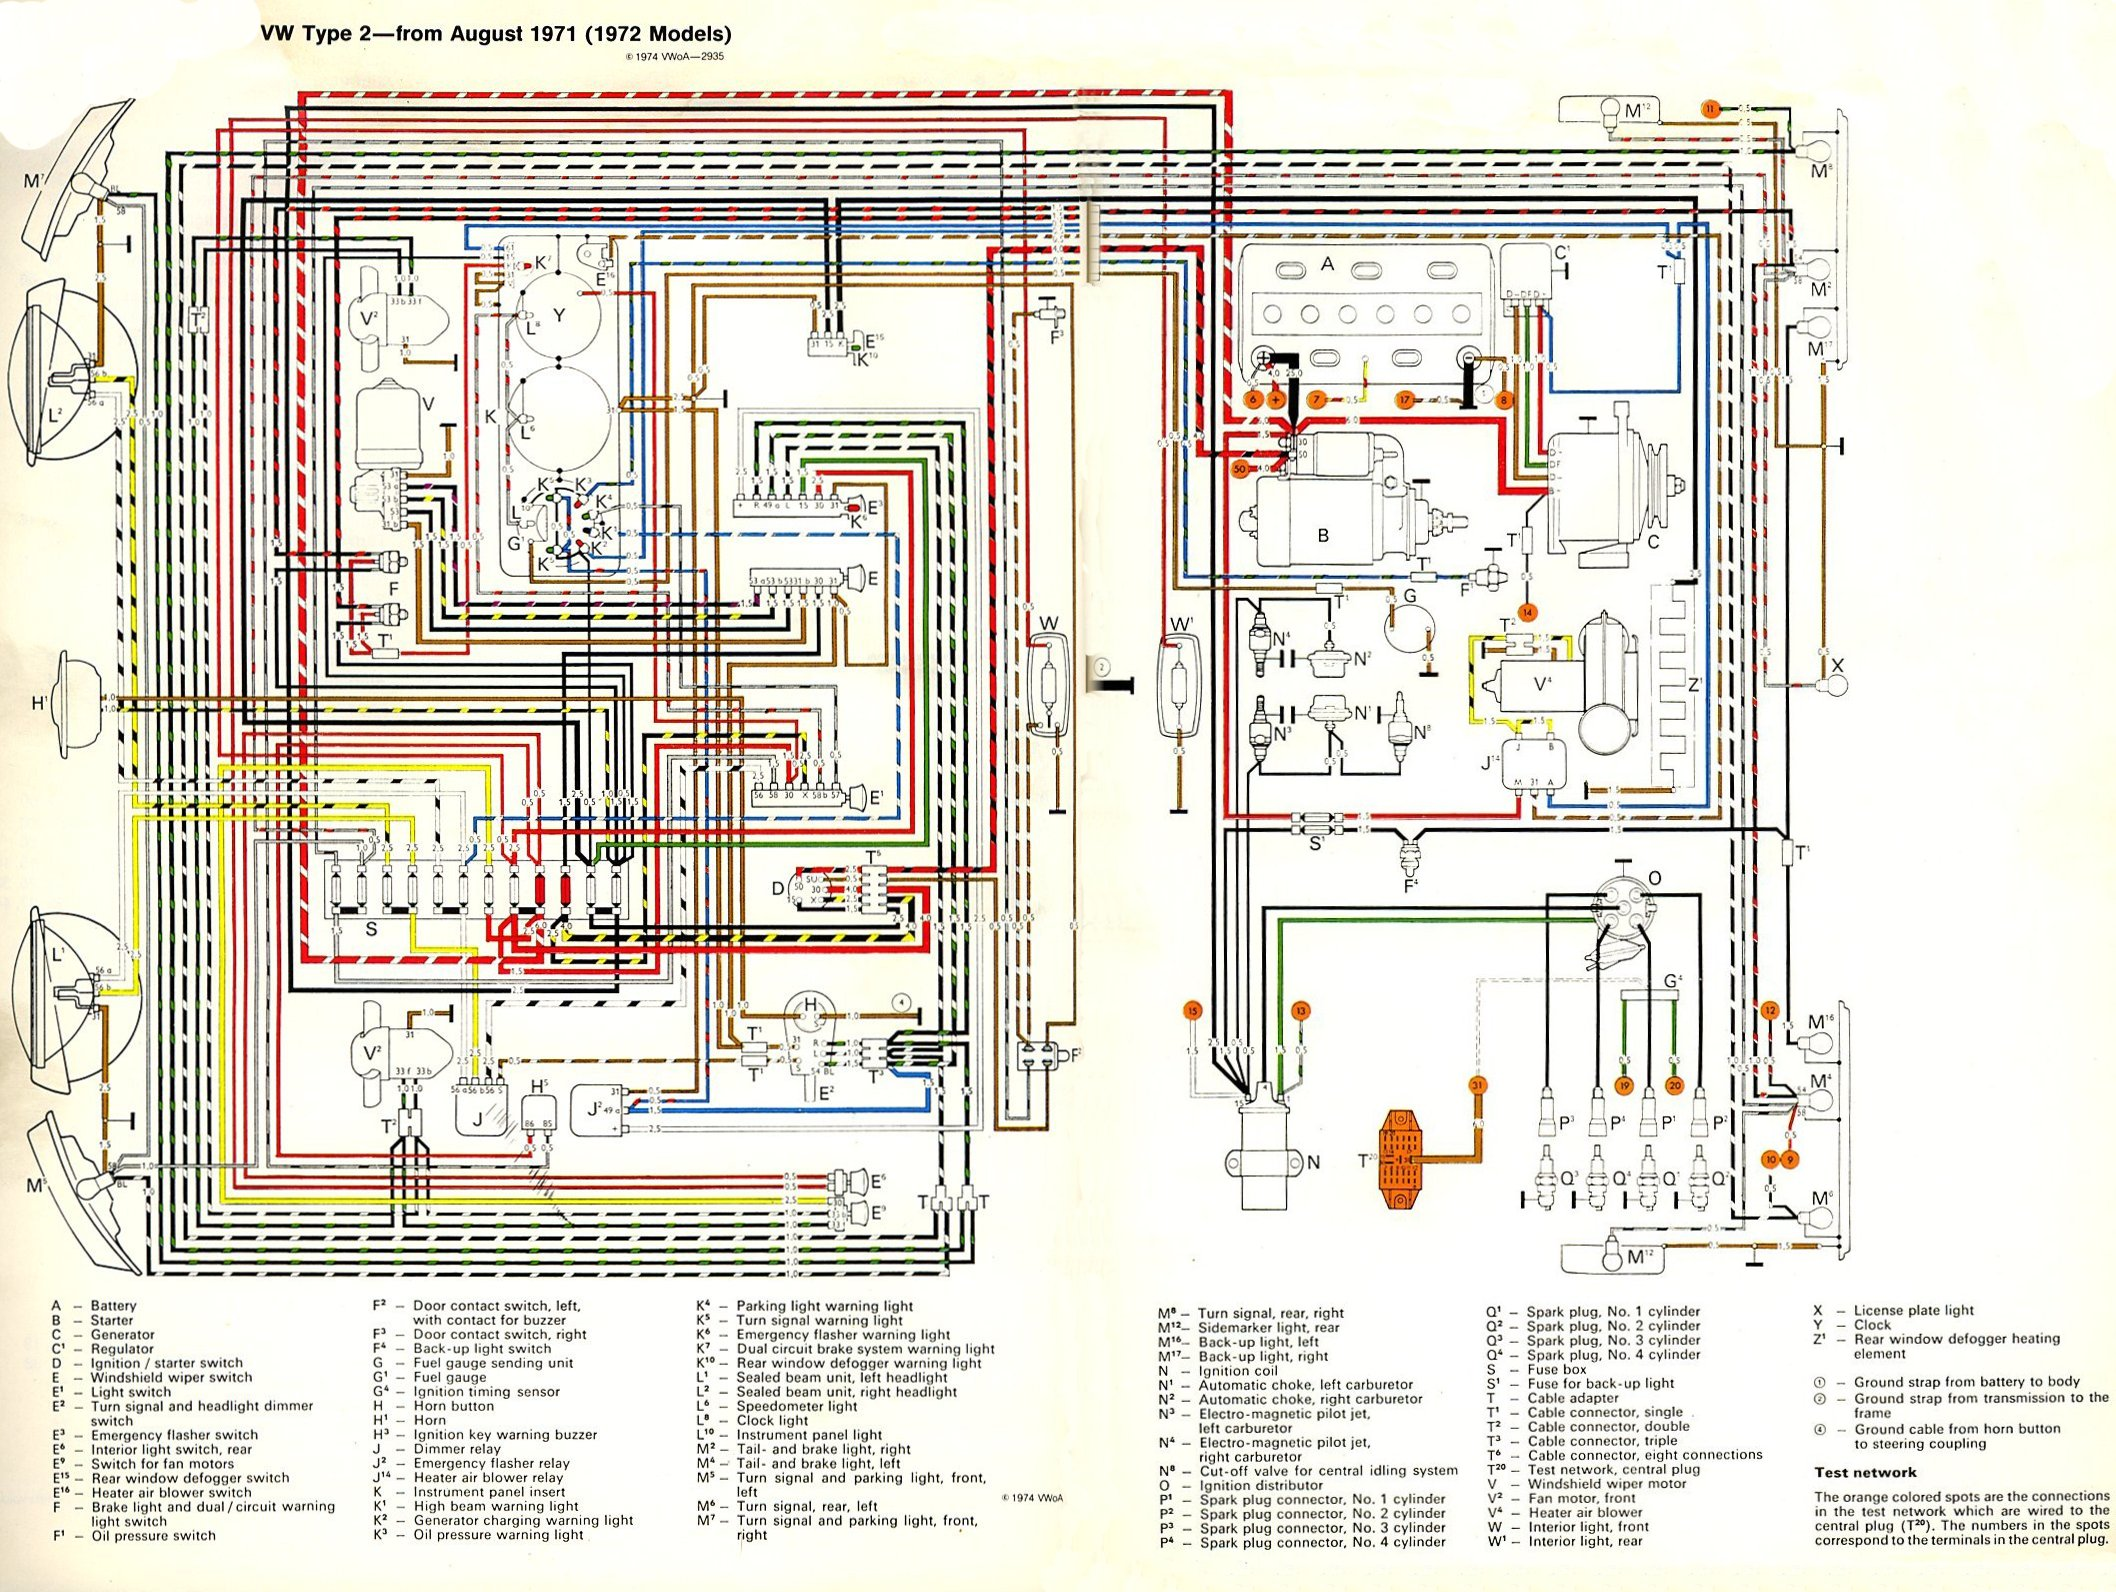 bus_1972_wiring 28 [ vw bus wiring diagram ] 1977 vw bus wiring diagram 1976 vw vw bus wiring diagram at edmiracle.co